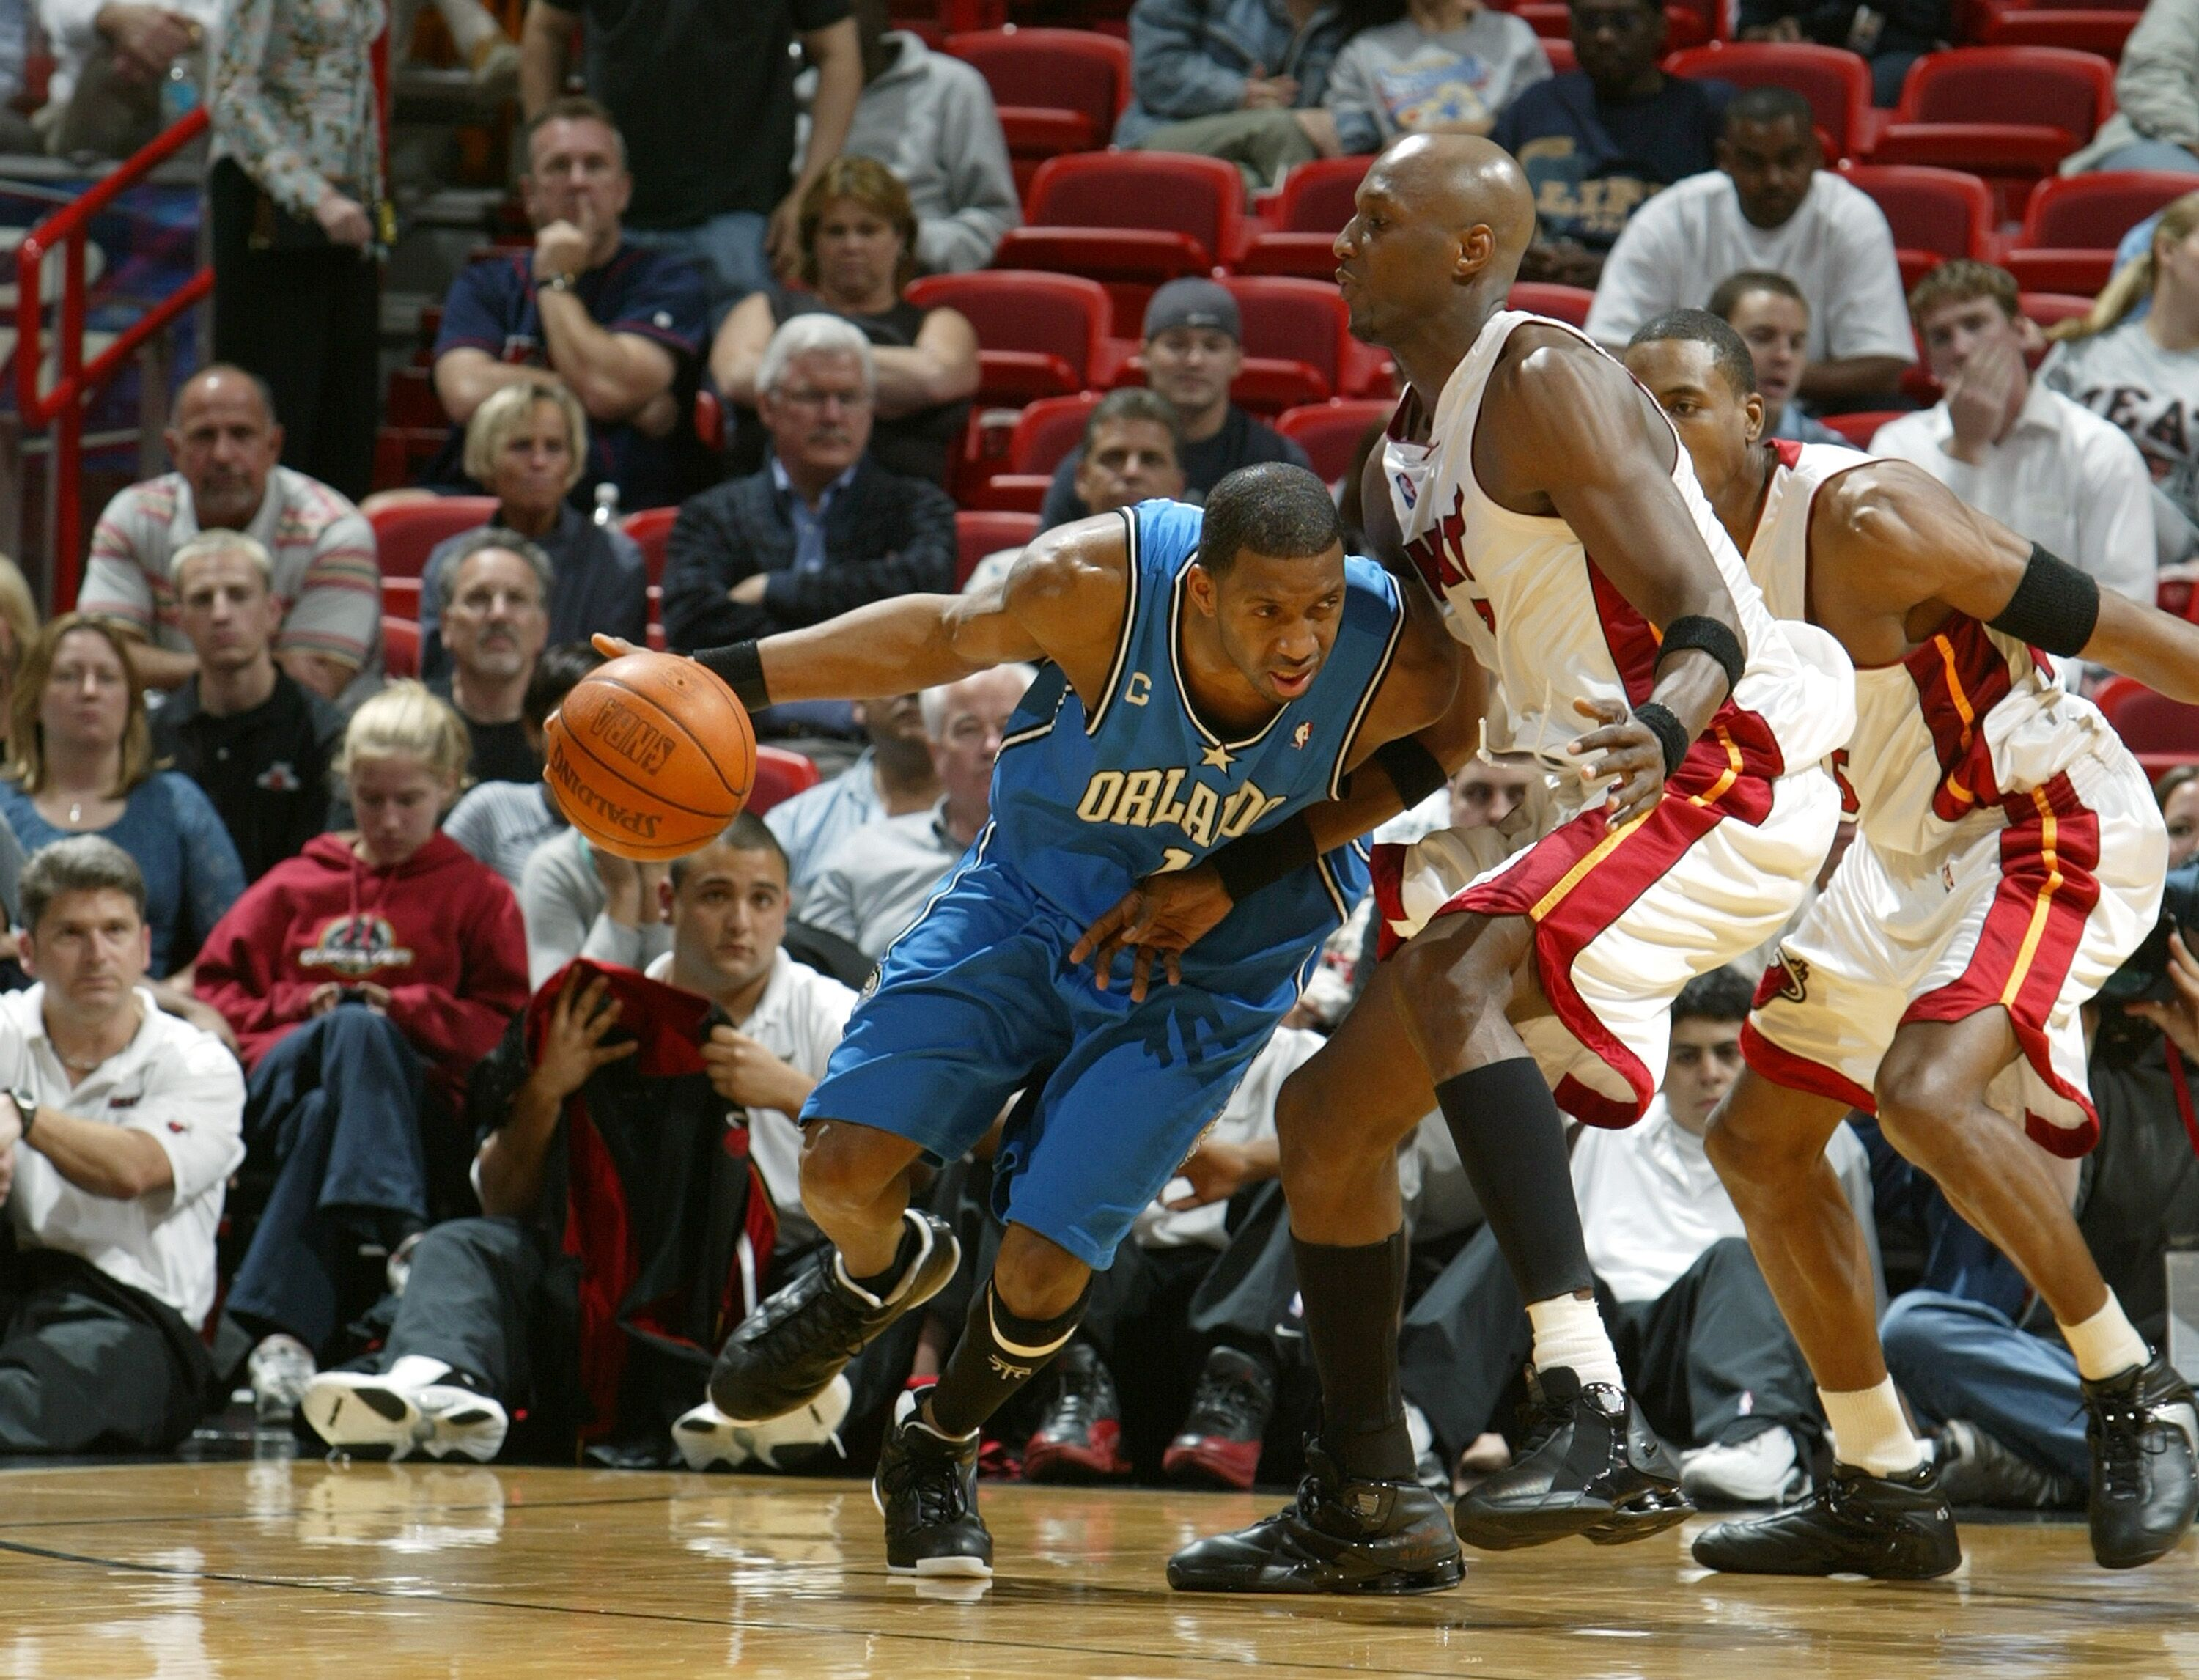 fb94de820 Tracy McGrady s career is one for the legends